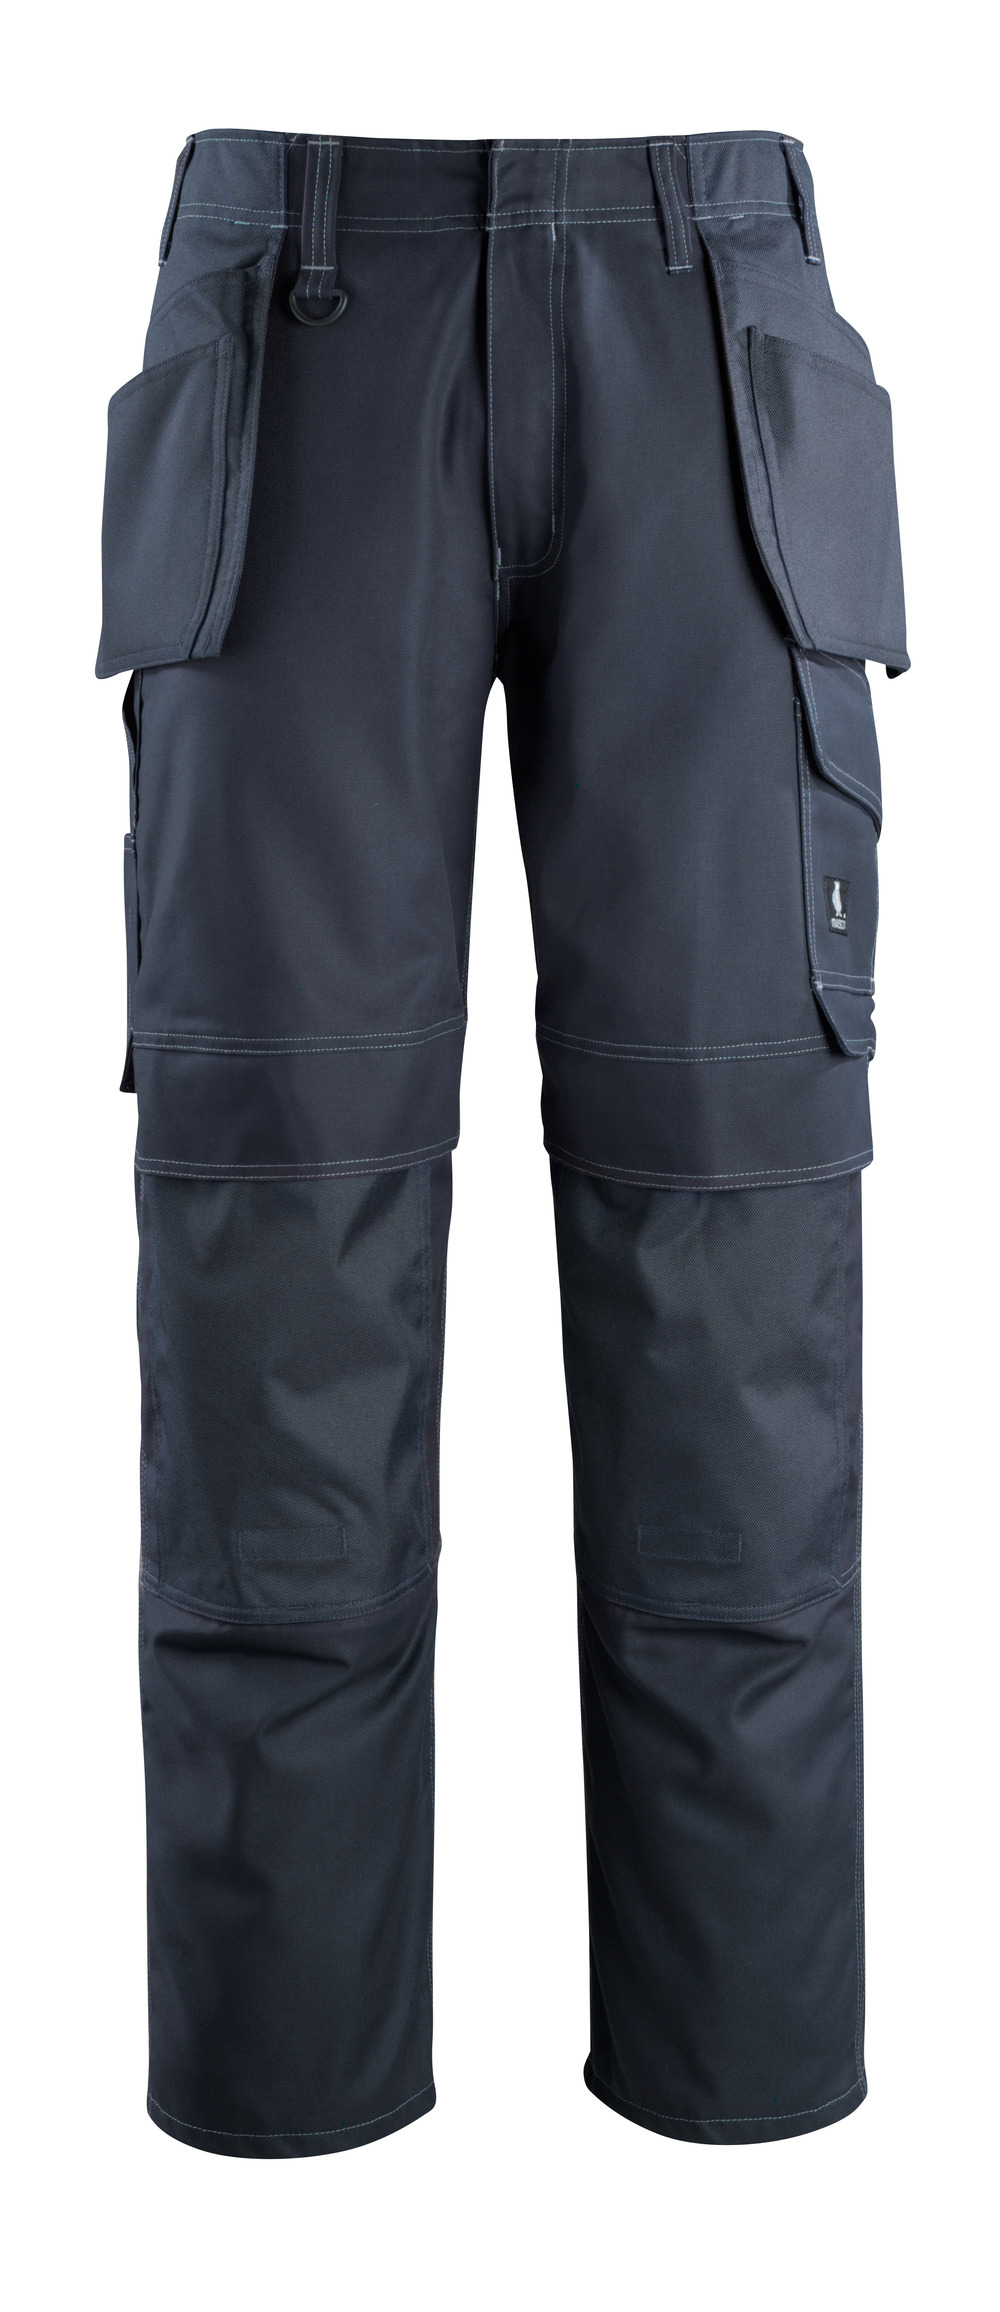 10131-154-010 Trousers with kneepad pockets and holster pockets - dark navy